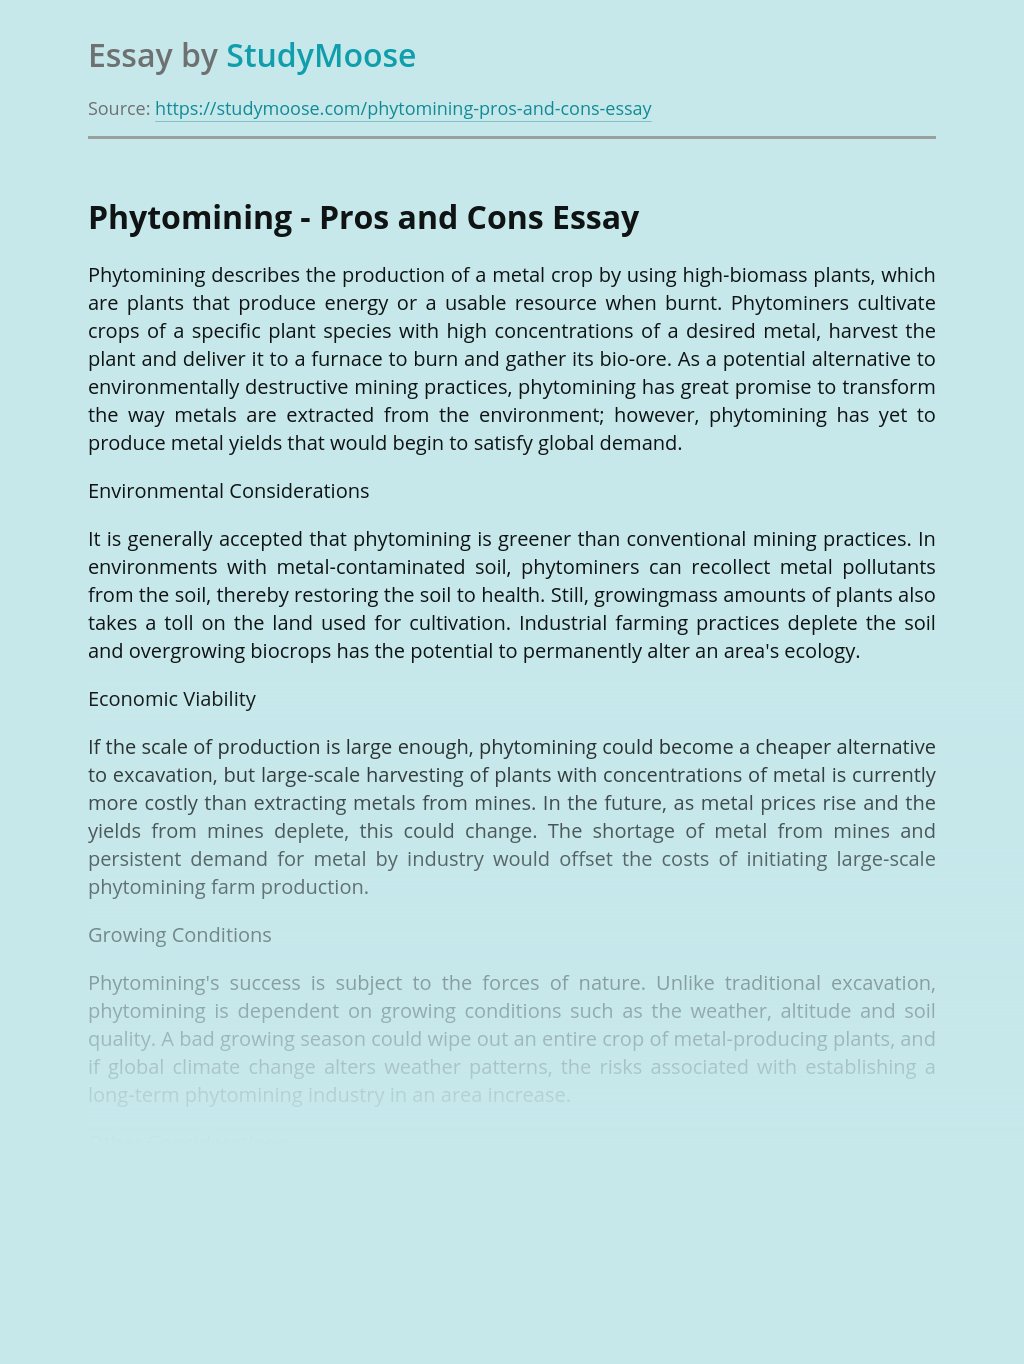 Phytomining Pros and Cons for Environment and Economy